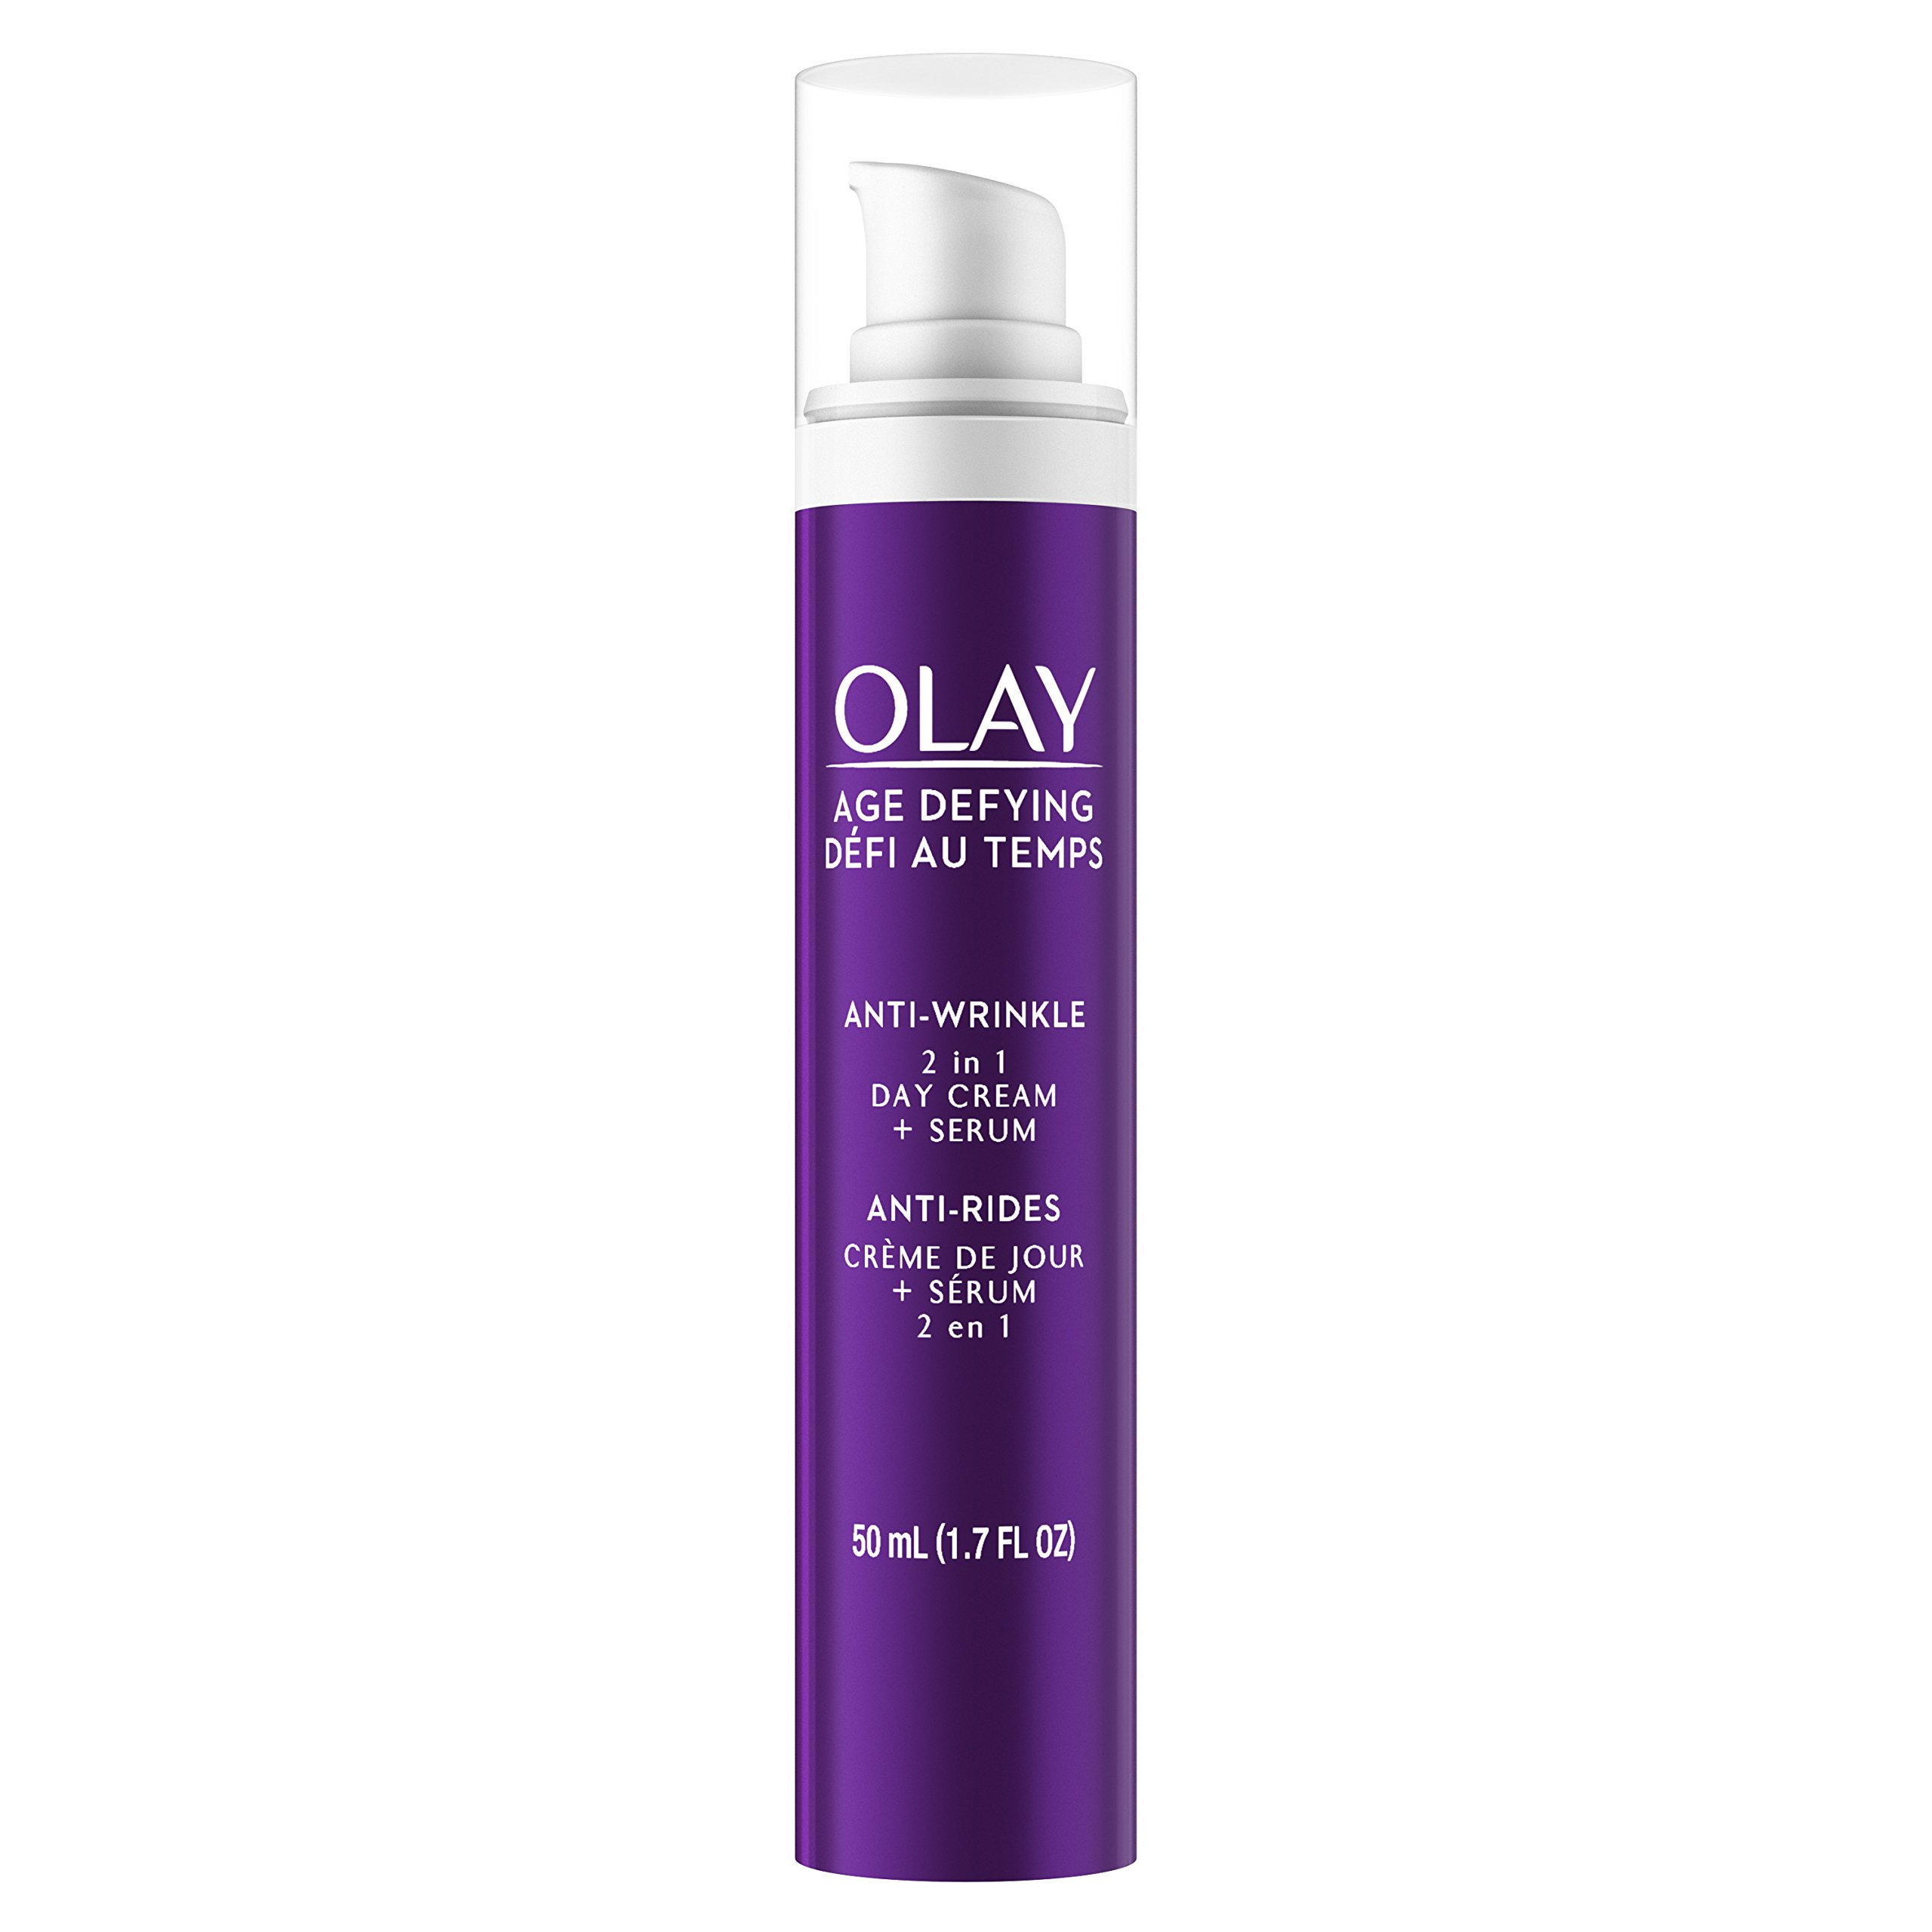 Face Serum by Olay Age Defying Anti-Wrinkle 2-in-1 Day Cream Plus Face Serum, 50 mL by Olay